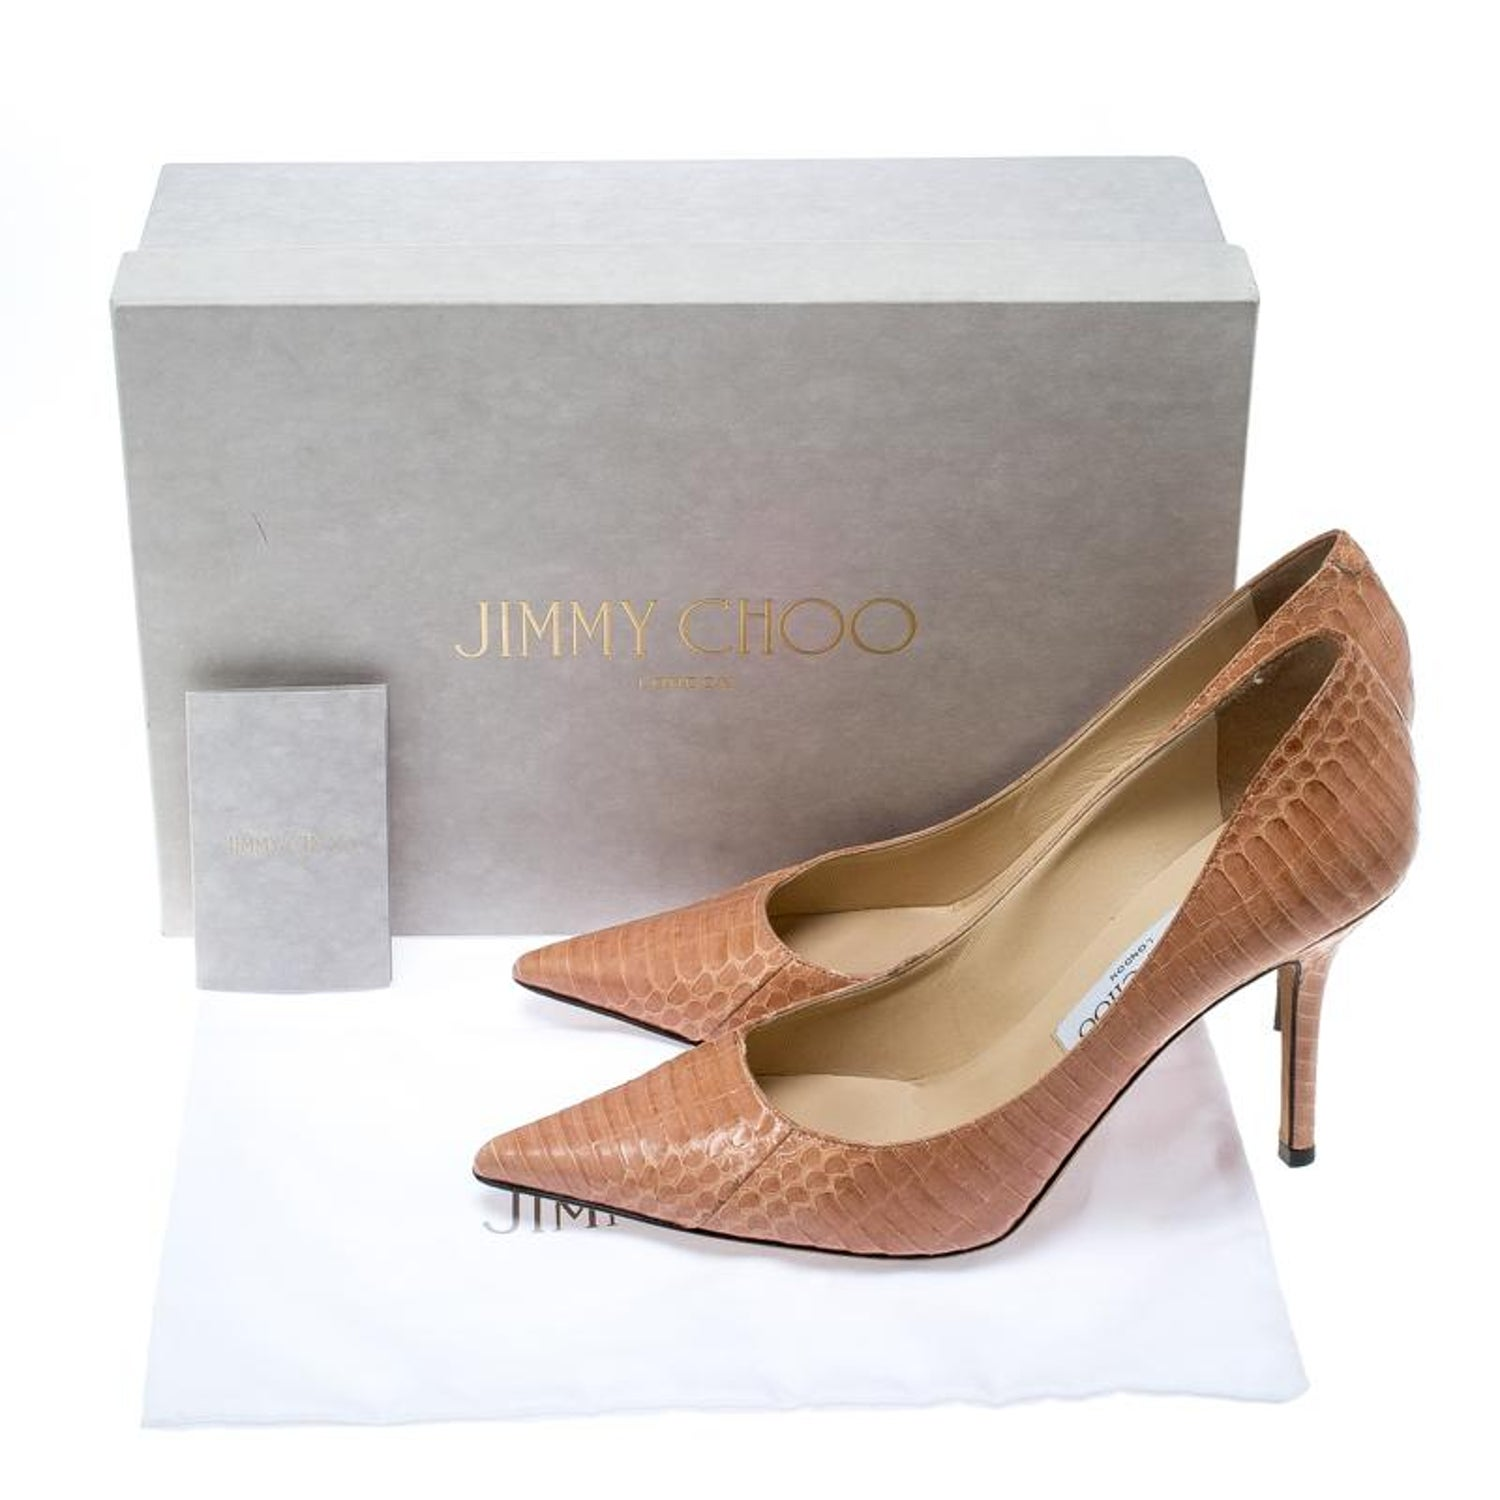 a6ae20c11b9 Jimmy Choo Blush Pink Elaphe Leather Agnes Pointed Toe Pumps Size 37 For  Sale at 1stdibs